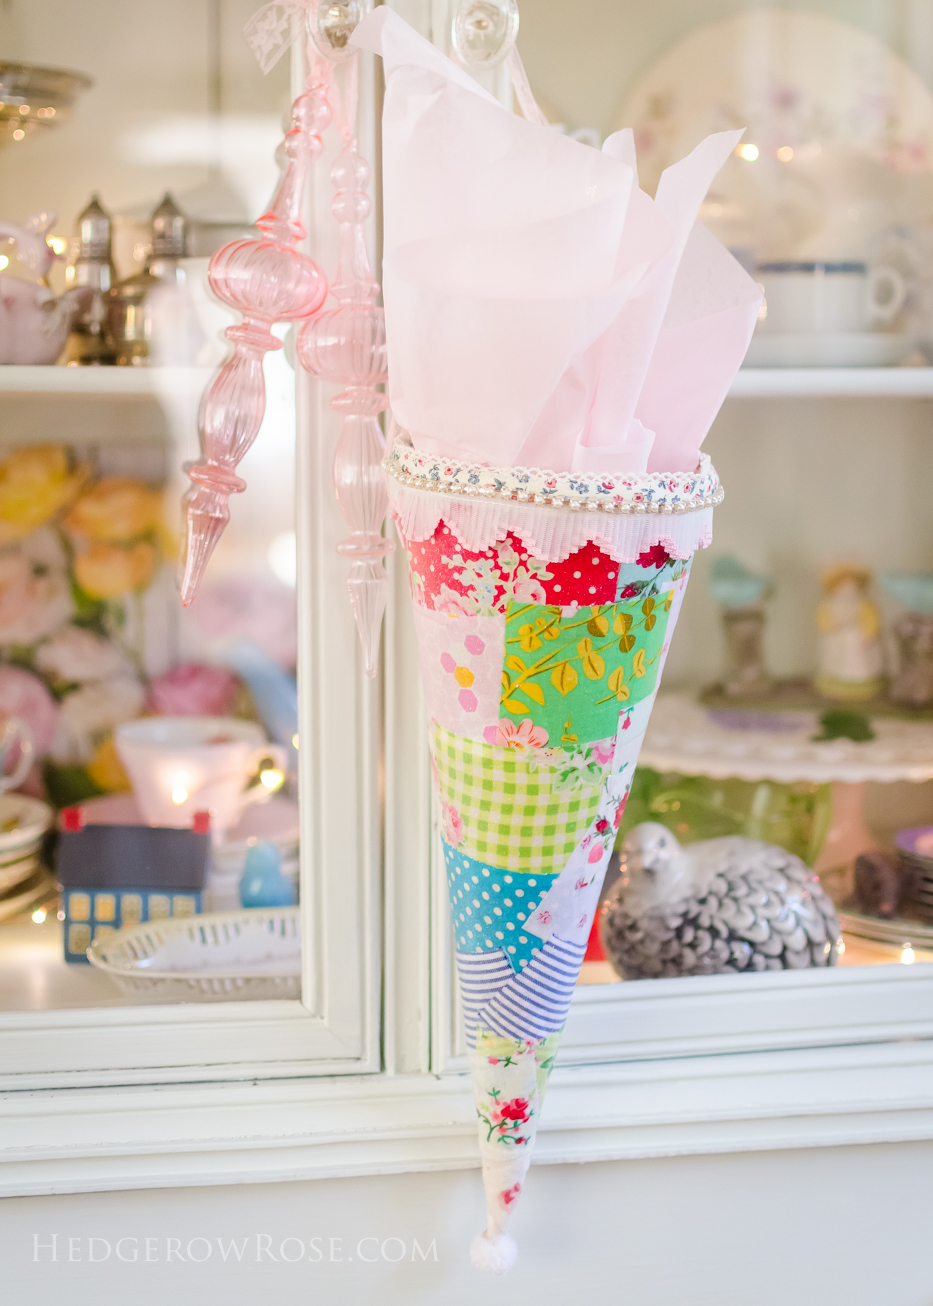 crafting-a-gift-cone-5